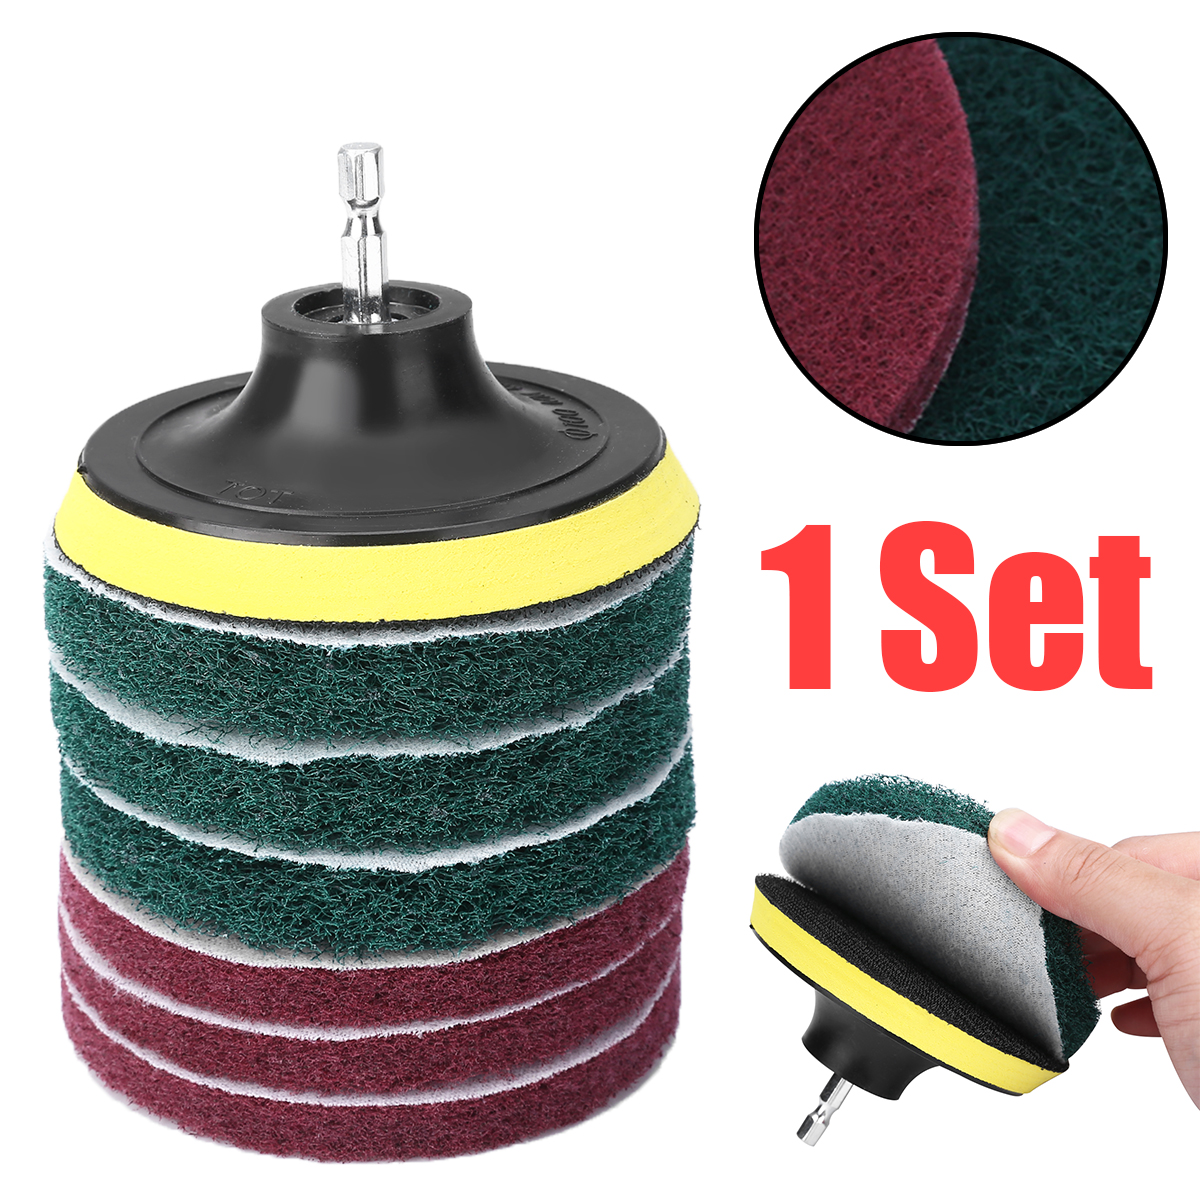 1set Drill Scouring Pads 6.35mm Hex Rod 5 inch Sticky Disk Cleaner Sanding Attachment for Tiles Sinks Bathtub Cleaning Kit